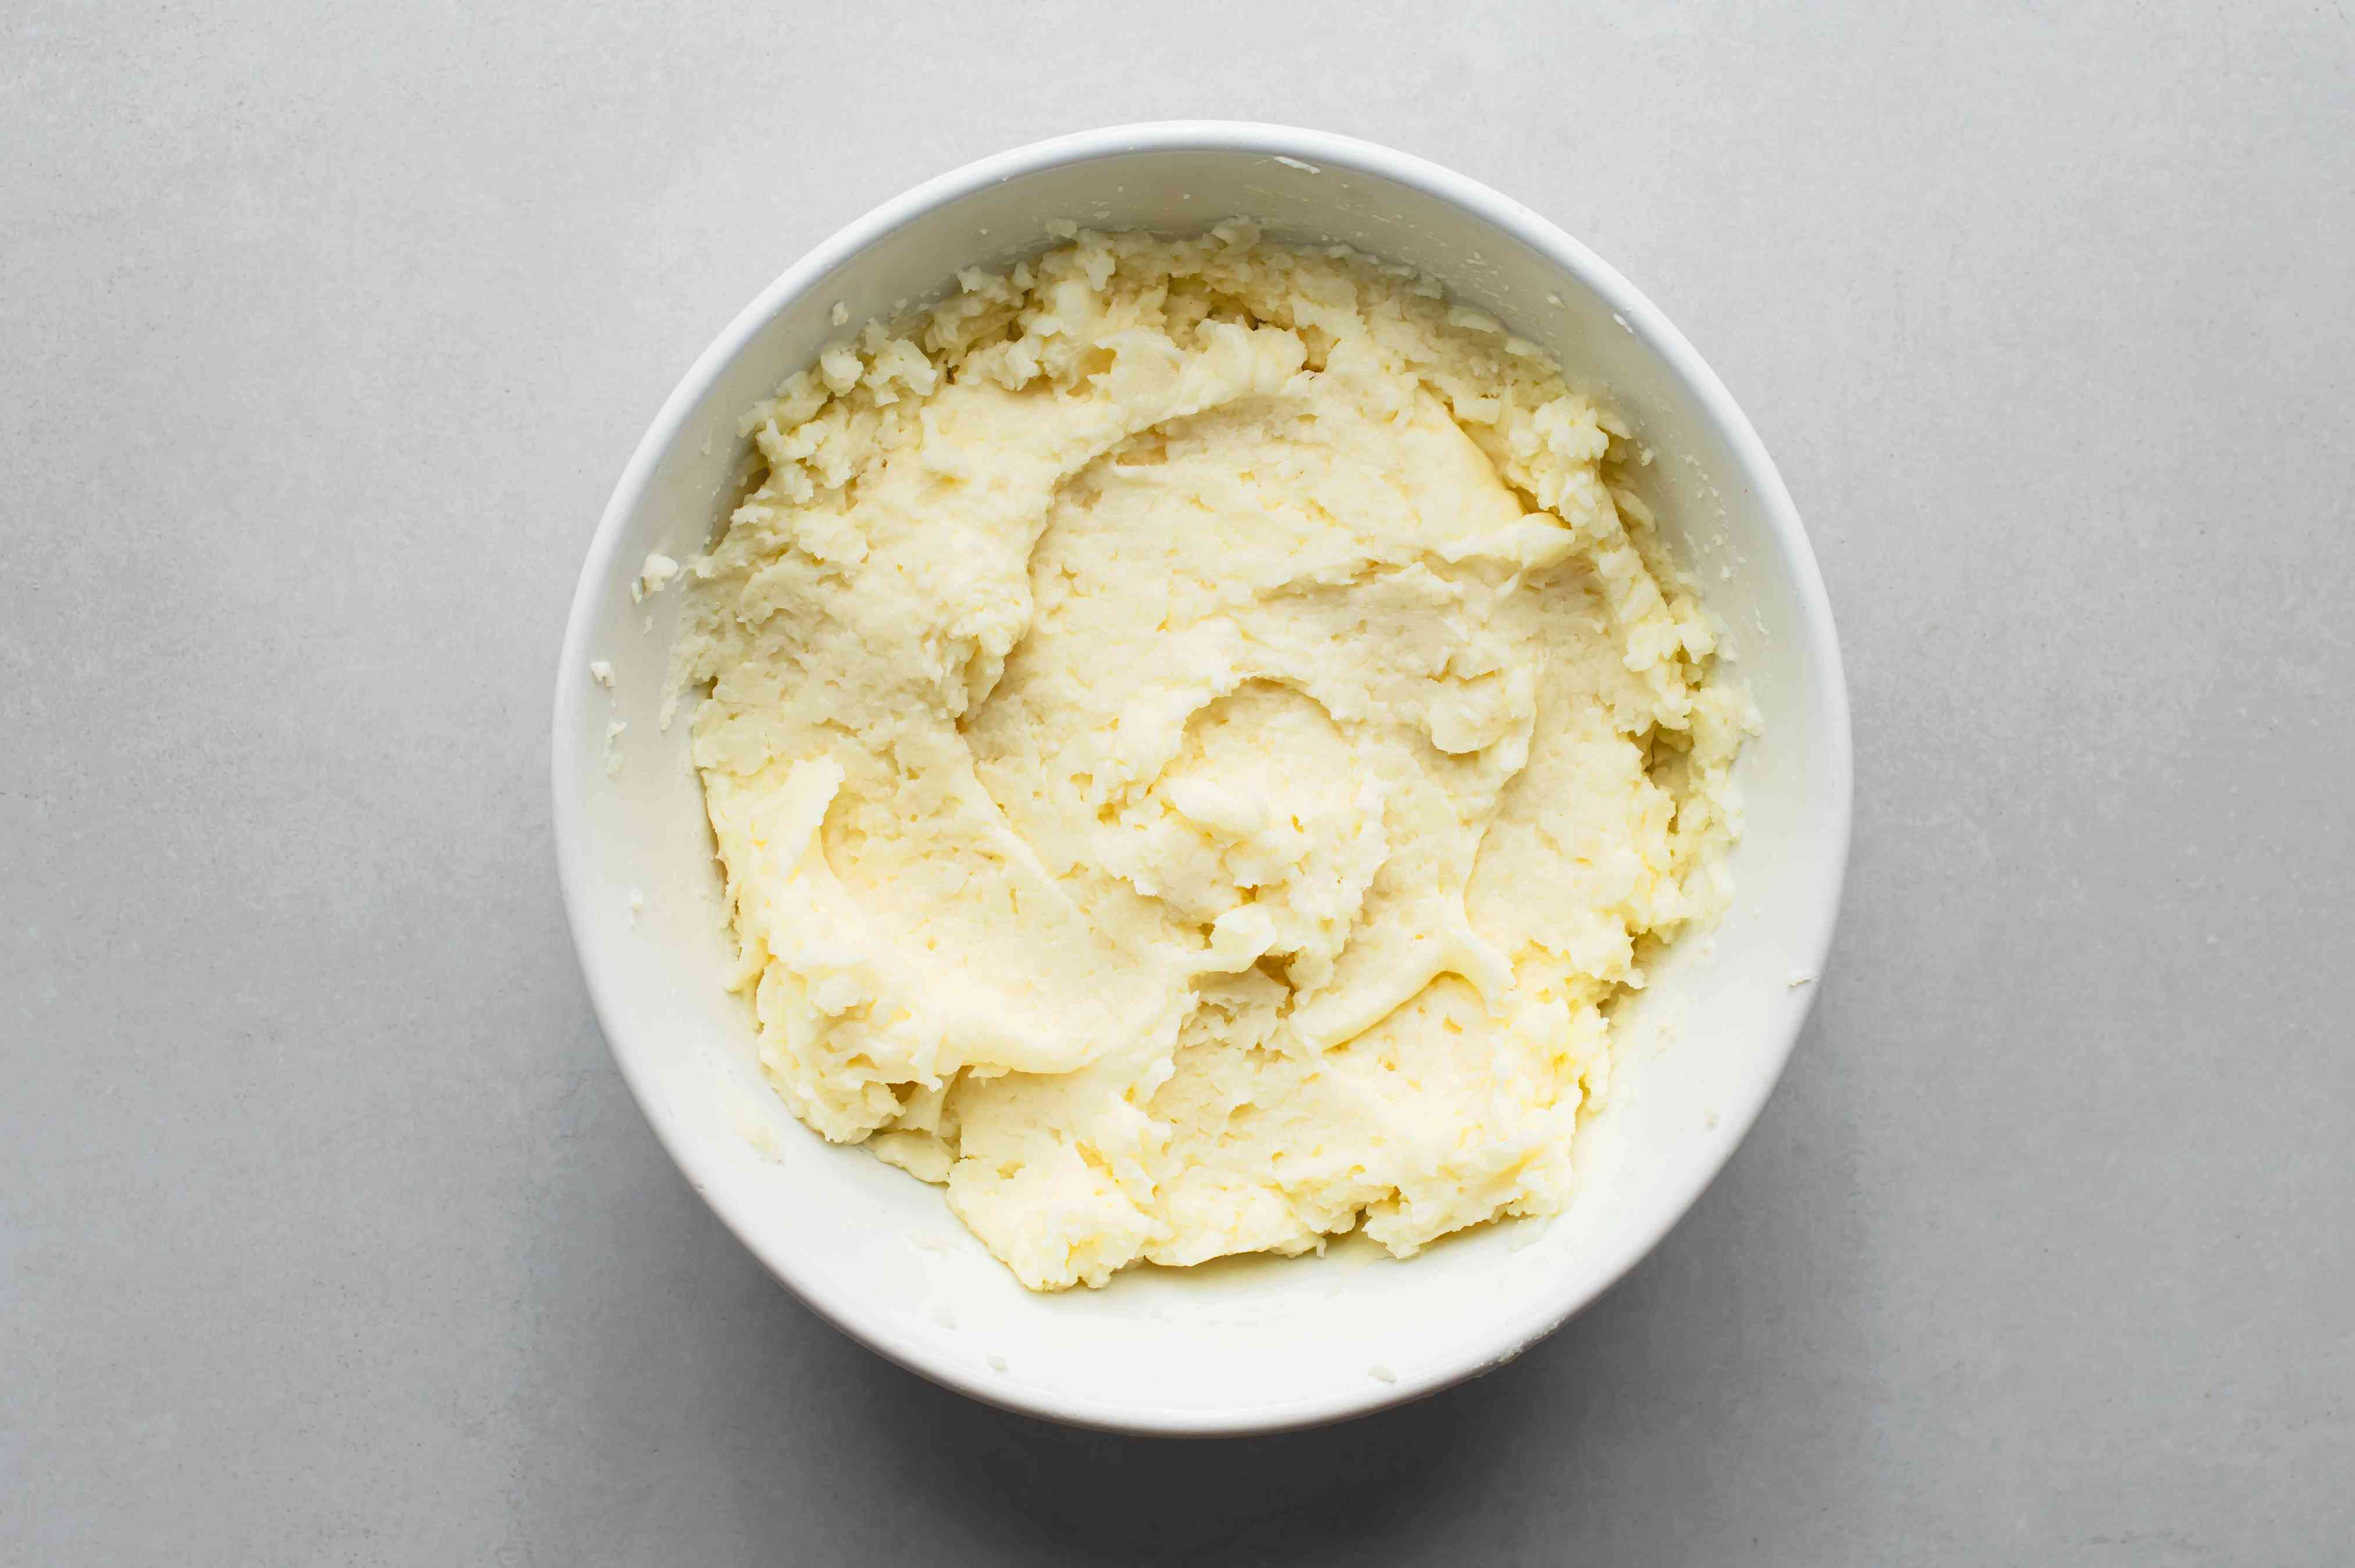 Cooked potatoes and butter mixture in a bowl